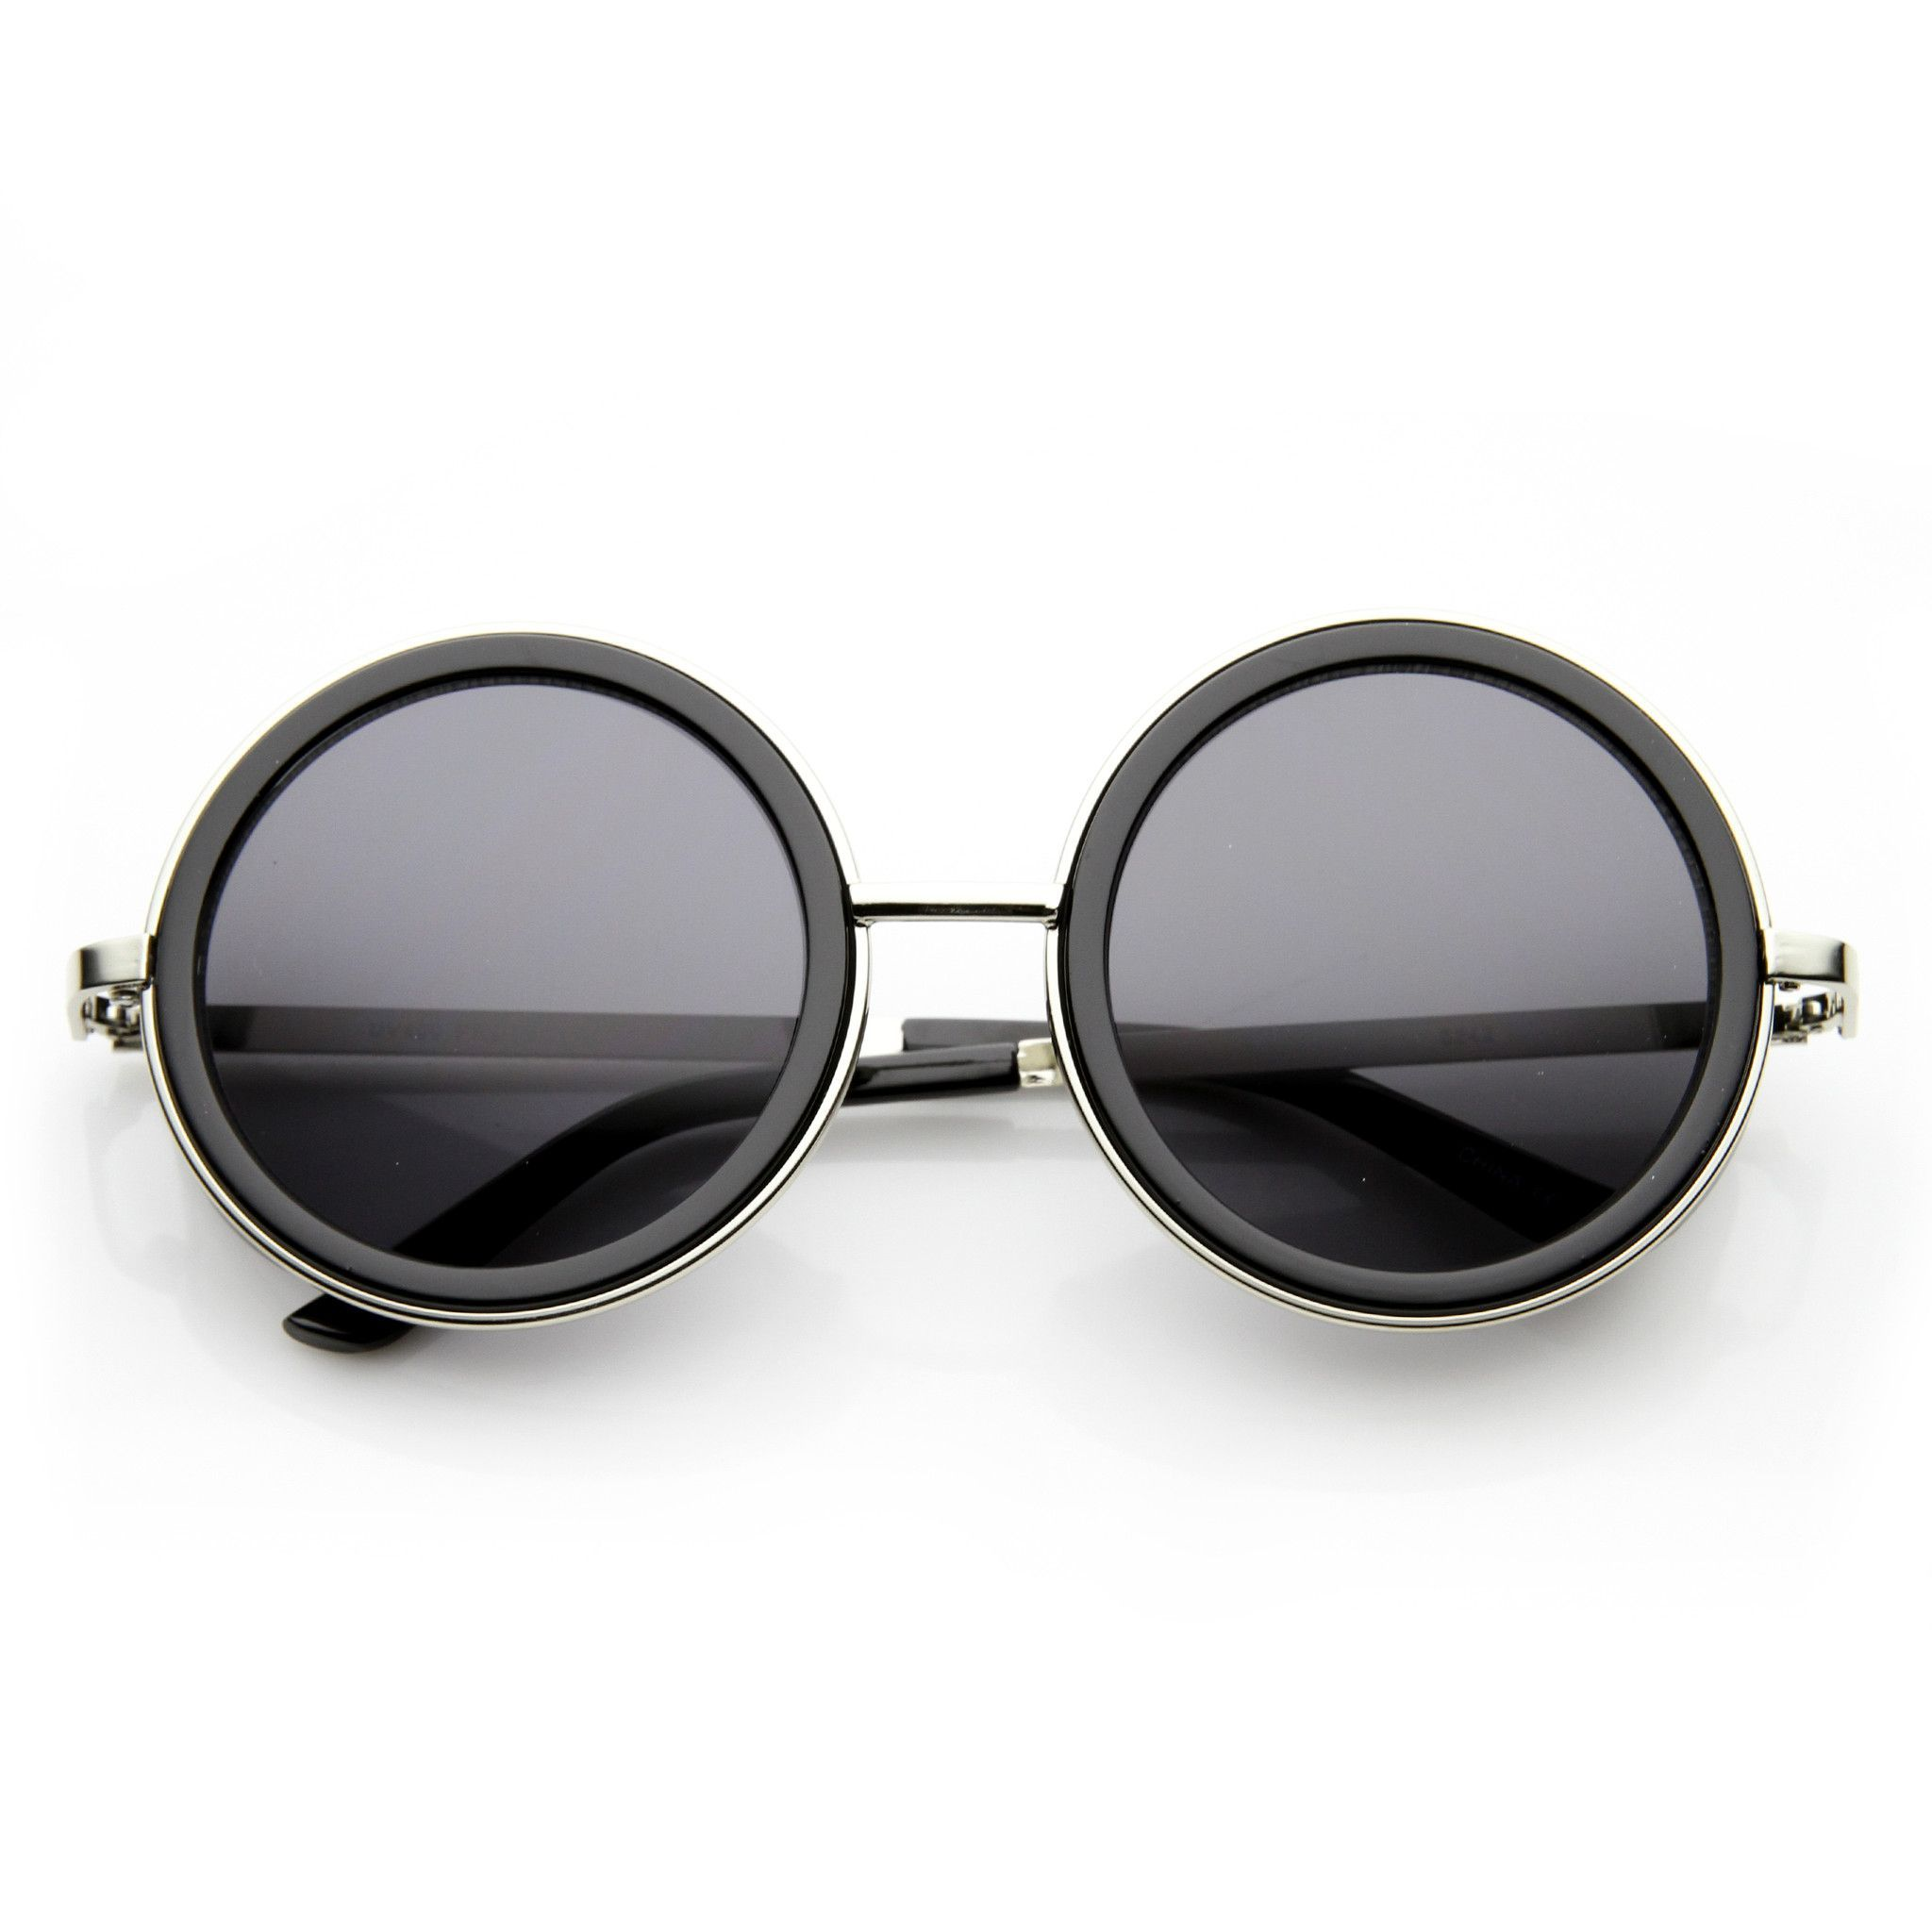 7378d841a7edc Vintage Inspired Steampunk Round Studio Cover Sunglasses 9629 ...